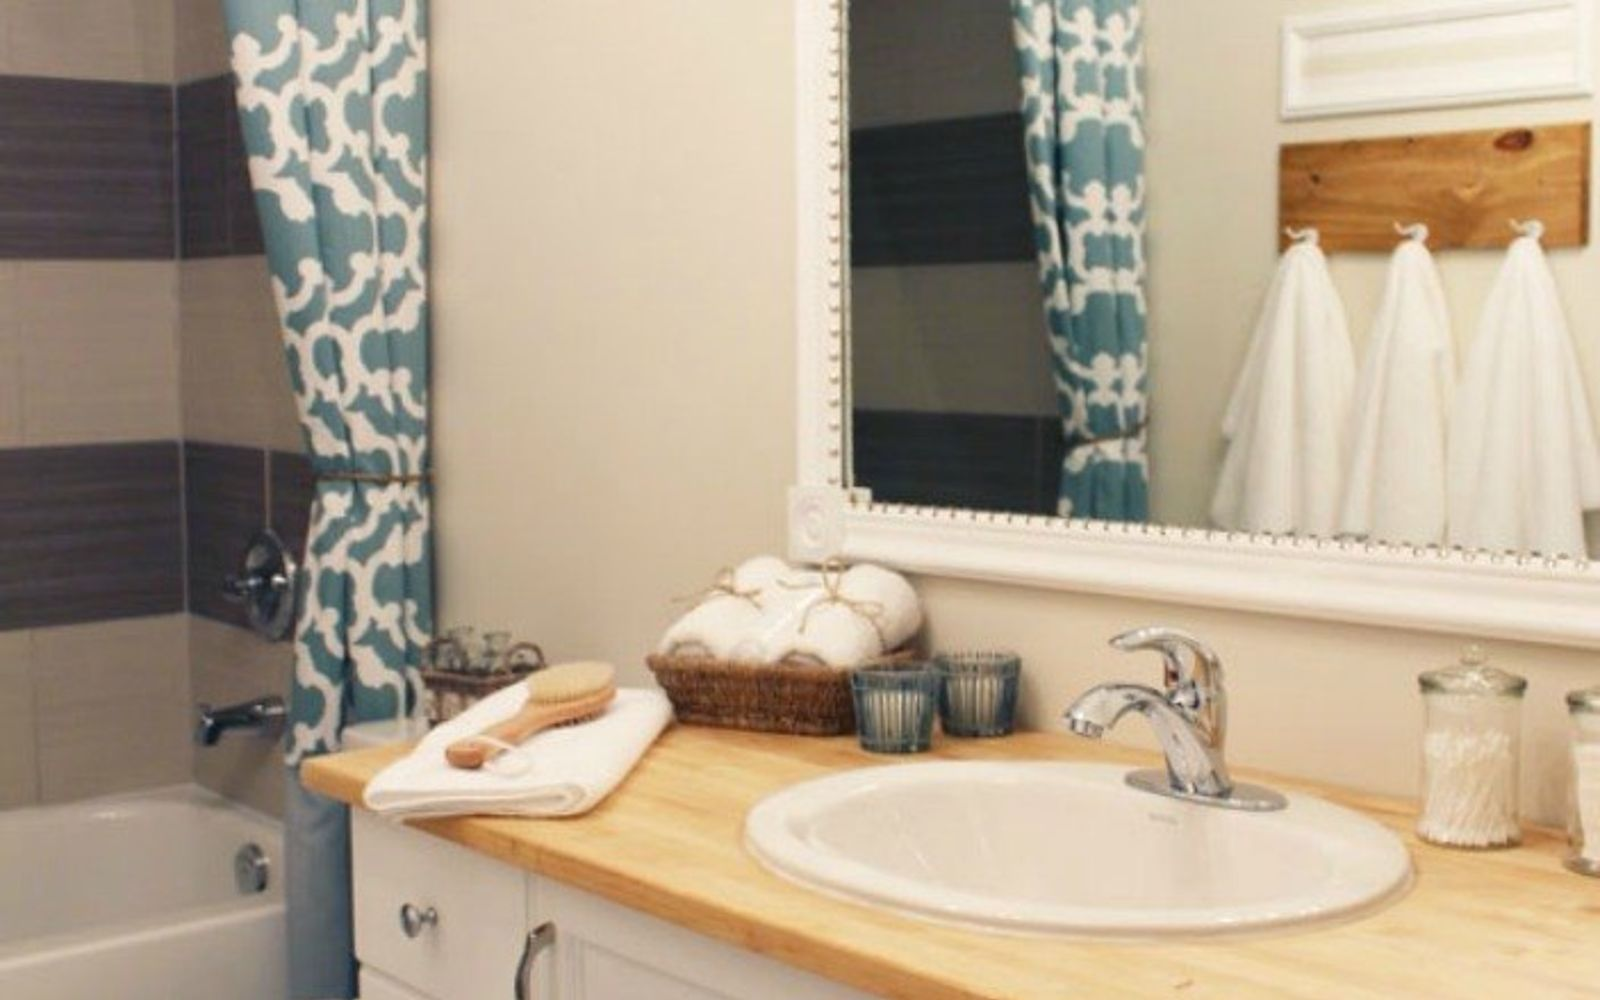 s 10 stunning ways to transform your bathroom mirror without removing it, bathroom ideas, home decor, Pin thumbtacks to moldings for some shine